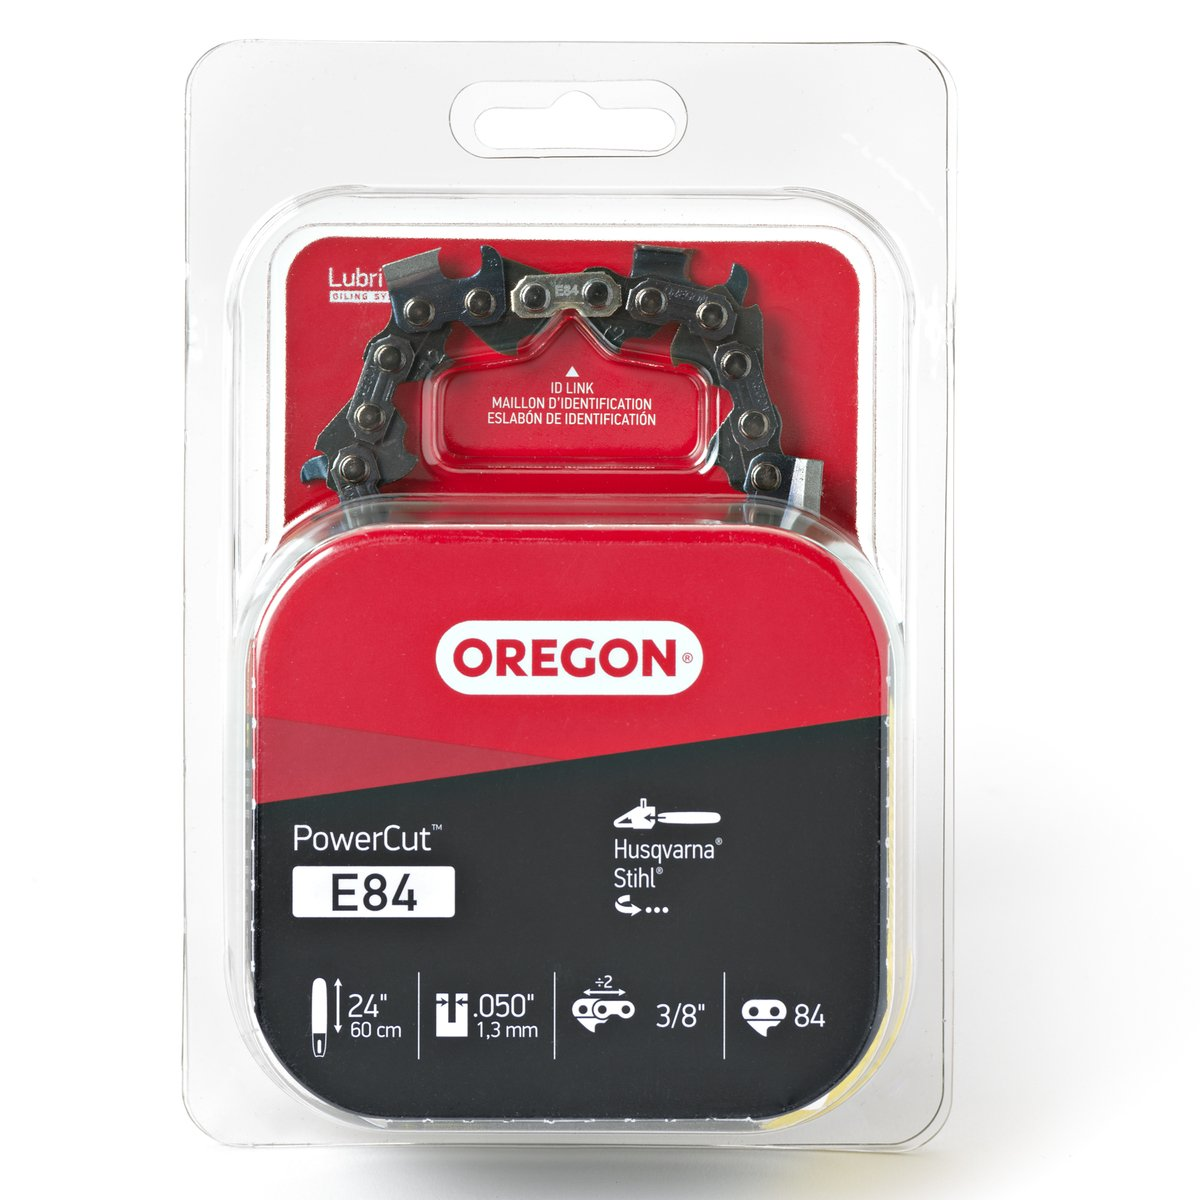 Oregon E84 PowerCut 24-Inch Chainsaw Chain, Fits Husqvarna, Stihl by Oregon